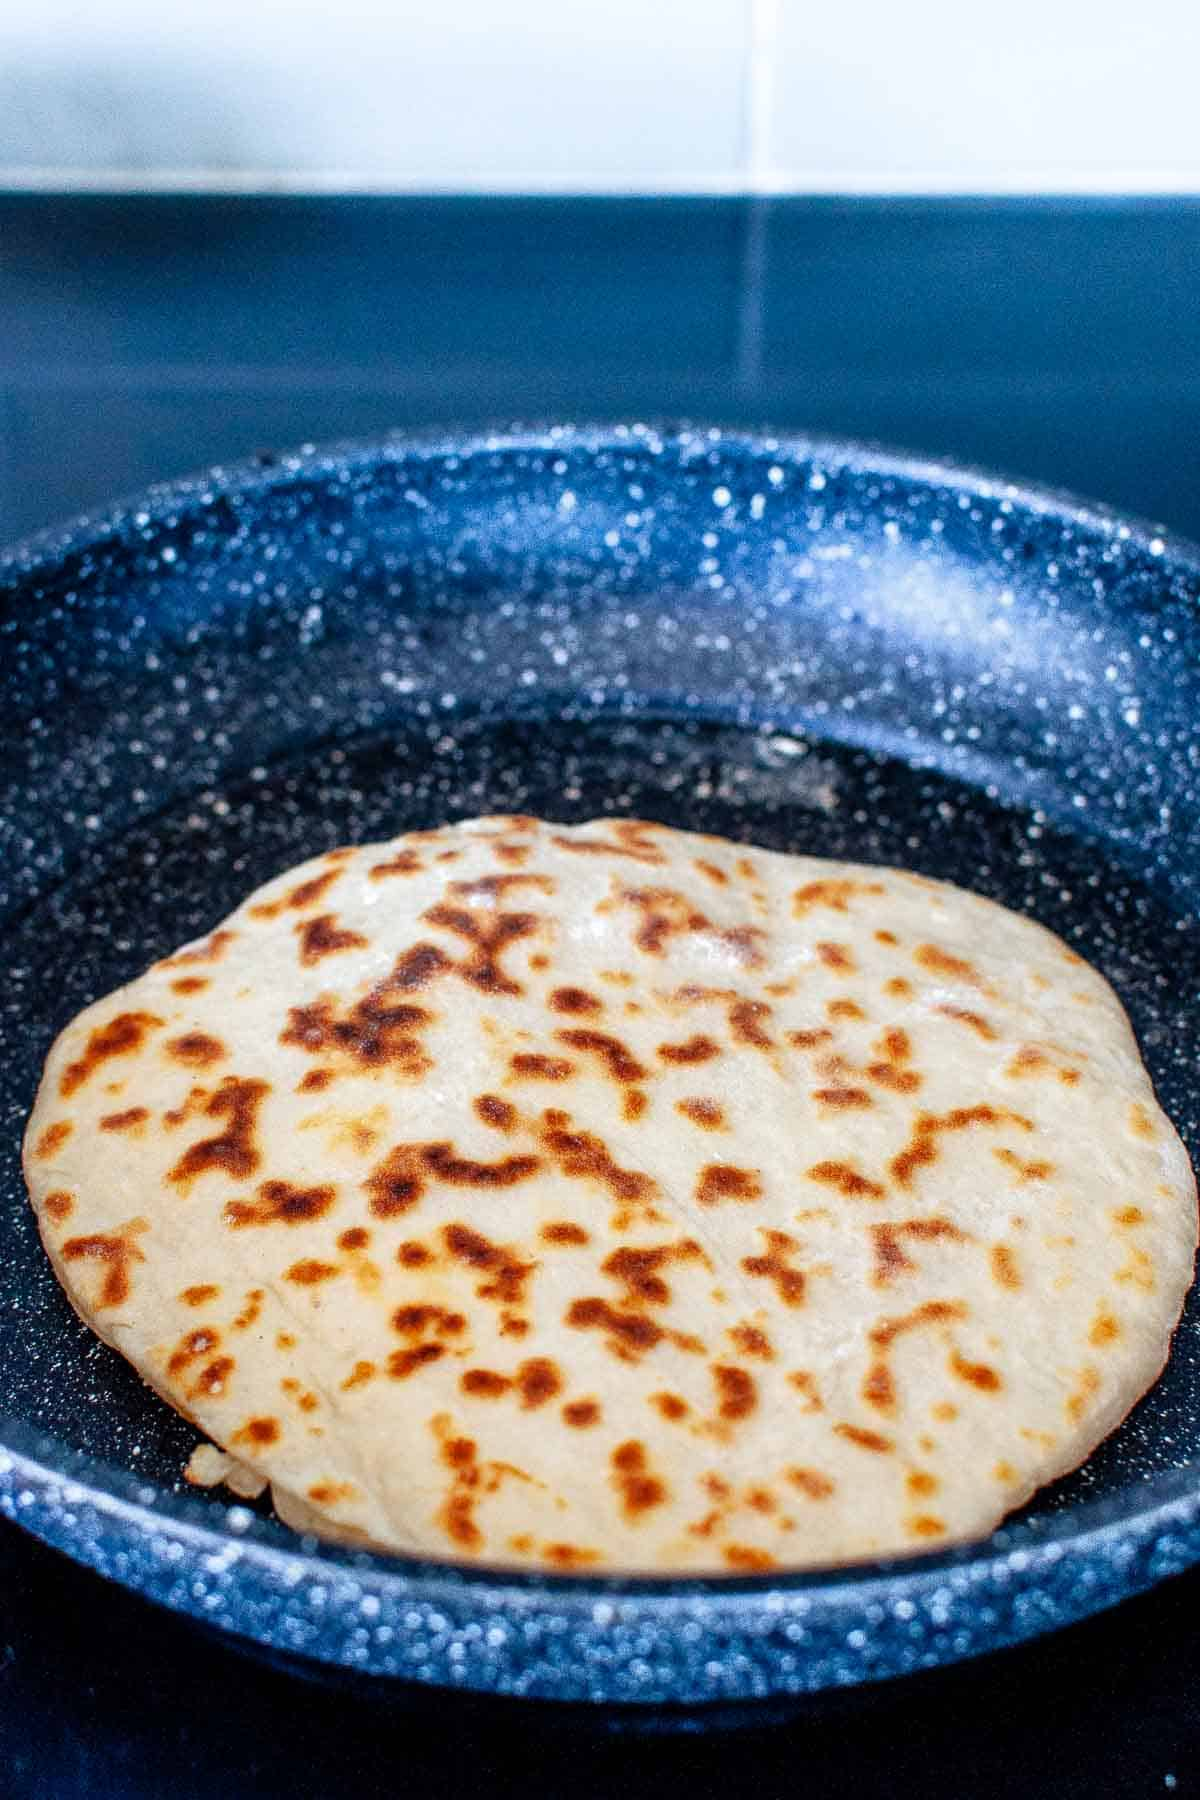 Cooking flatbread in a pan